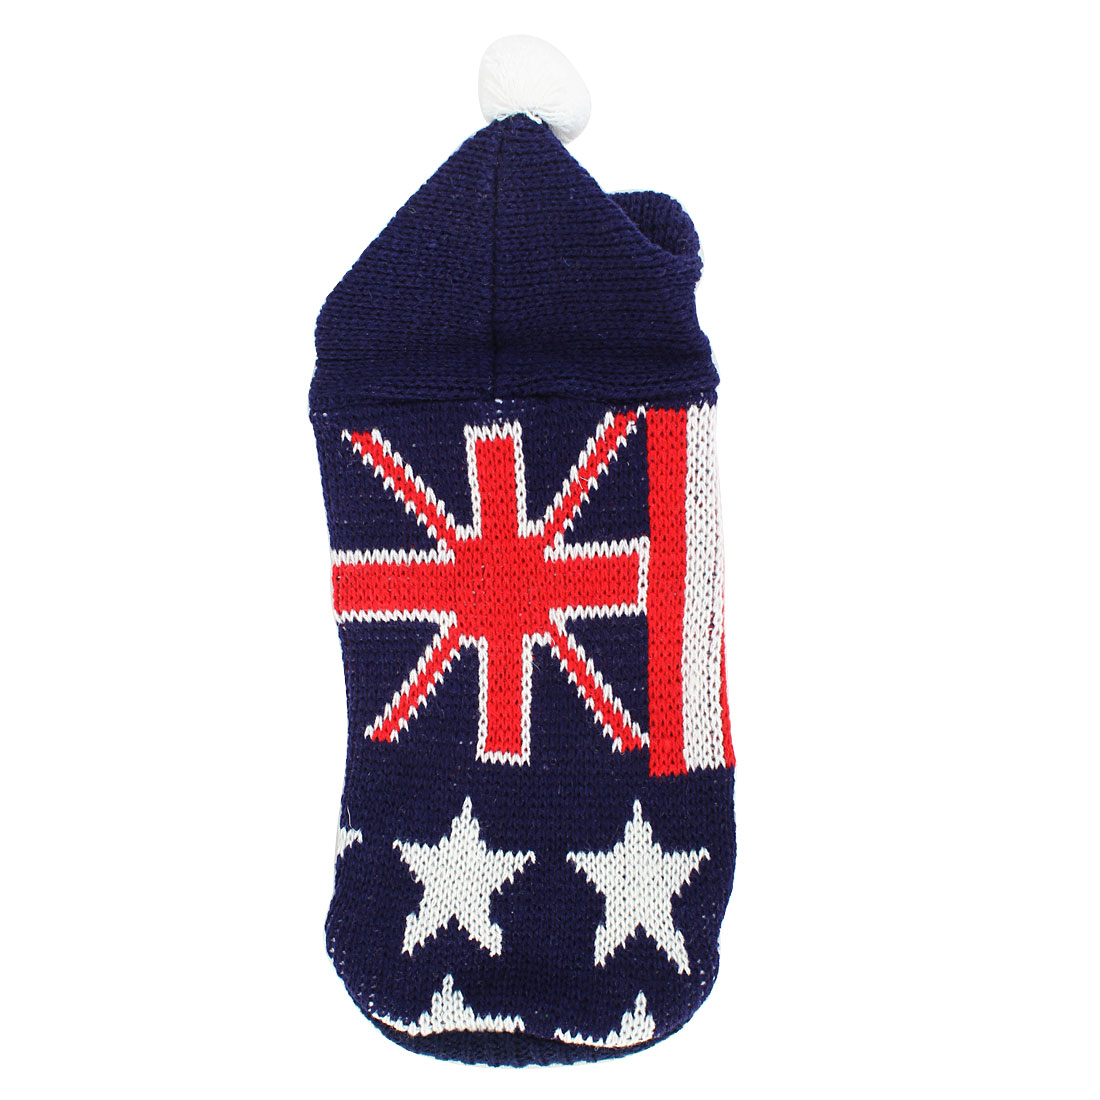 Pet Puppy Maltese Dark Blue Red White Ribbed Cuff Knitwear Hoodie Apparel Sweater Size M